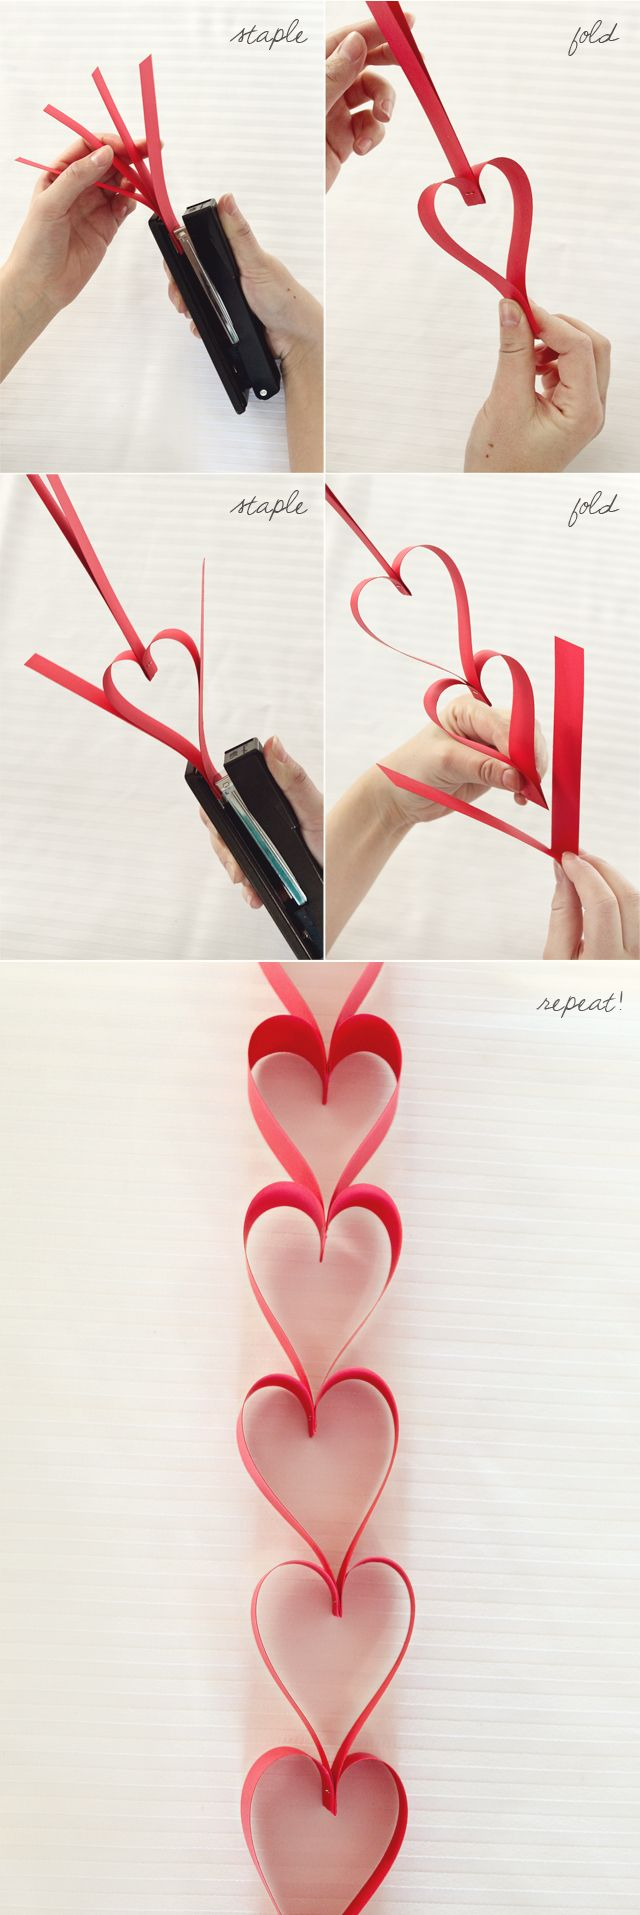 Paper Heart Garland.  Looks like a quick and easy project!